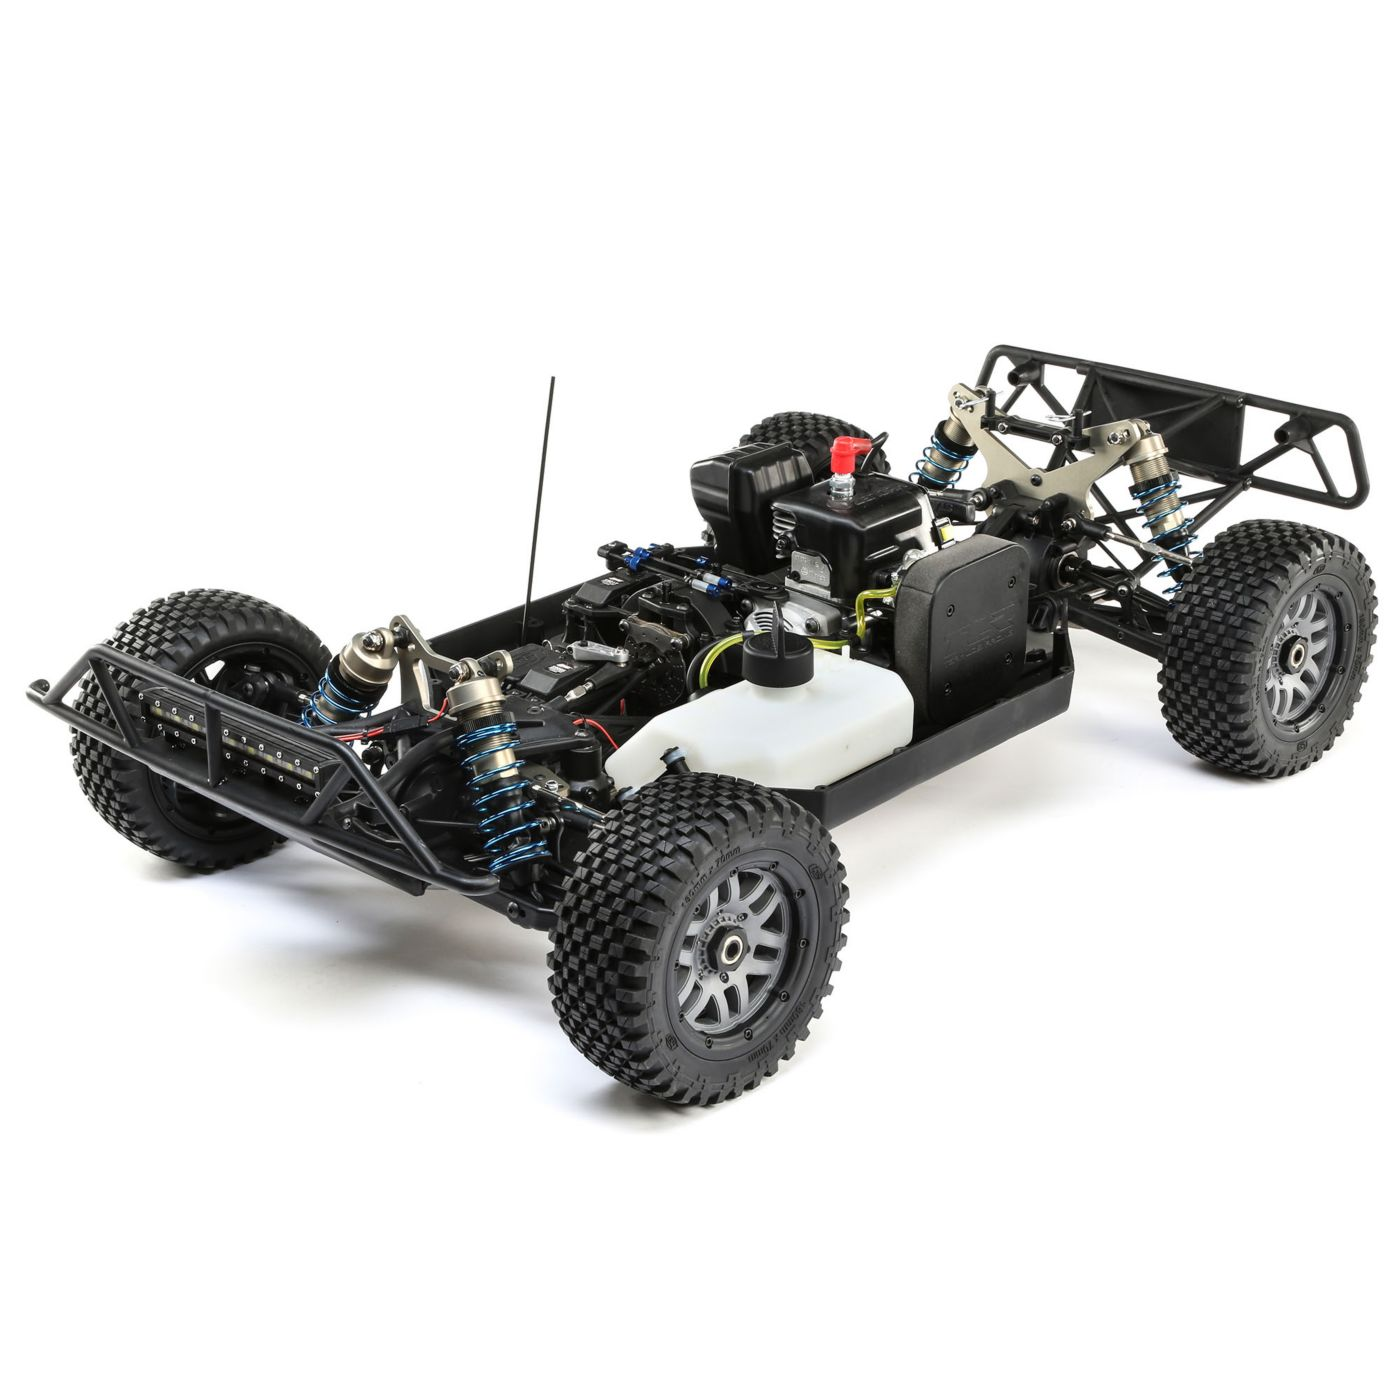 Losi 5ive 2. 0 scala 1/ 5 32cc Short Course BND 3